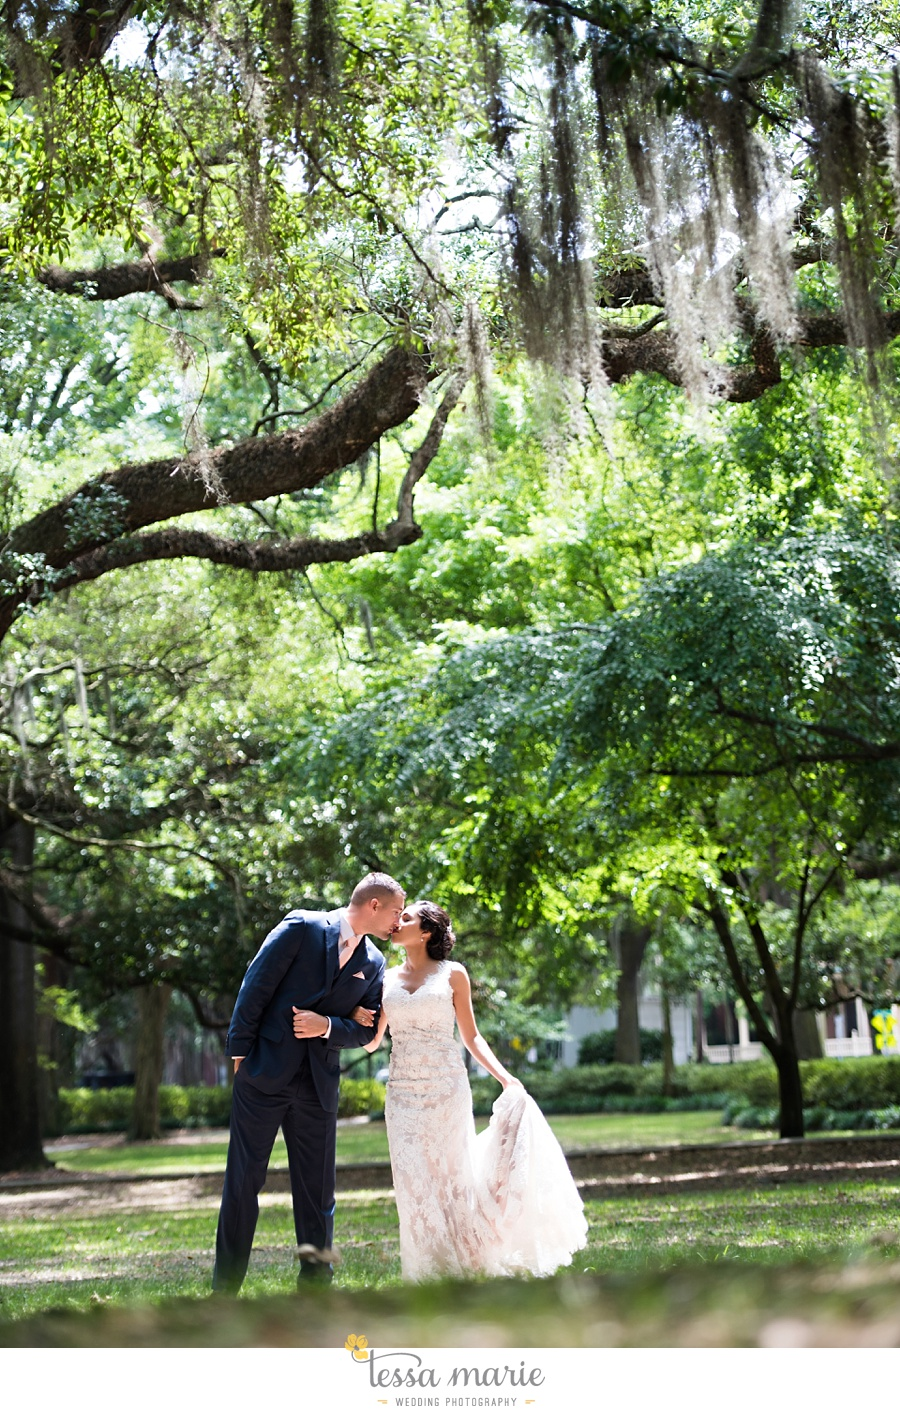 savannah_destination_wedding_photographer_wormsole_elopement_tessa_marie_weddings_essence_of_australia_gown_0051